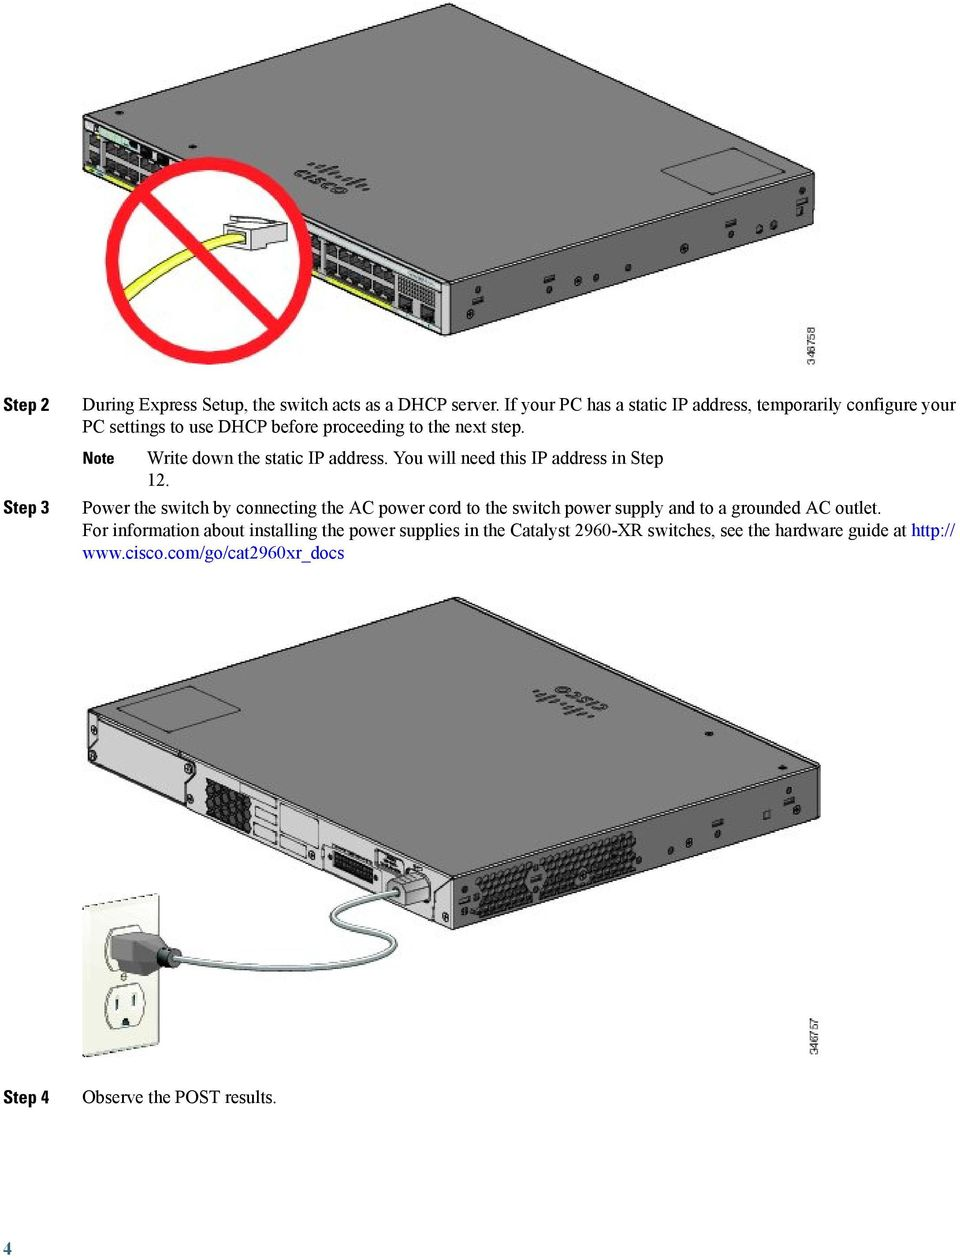 Getting Started Guide For The Catalyst 2960 X And Xr Switches Pdf Necessary Should Be Connected To Cisco Series Switch You Will Need This Ip Address In Step 12